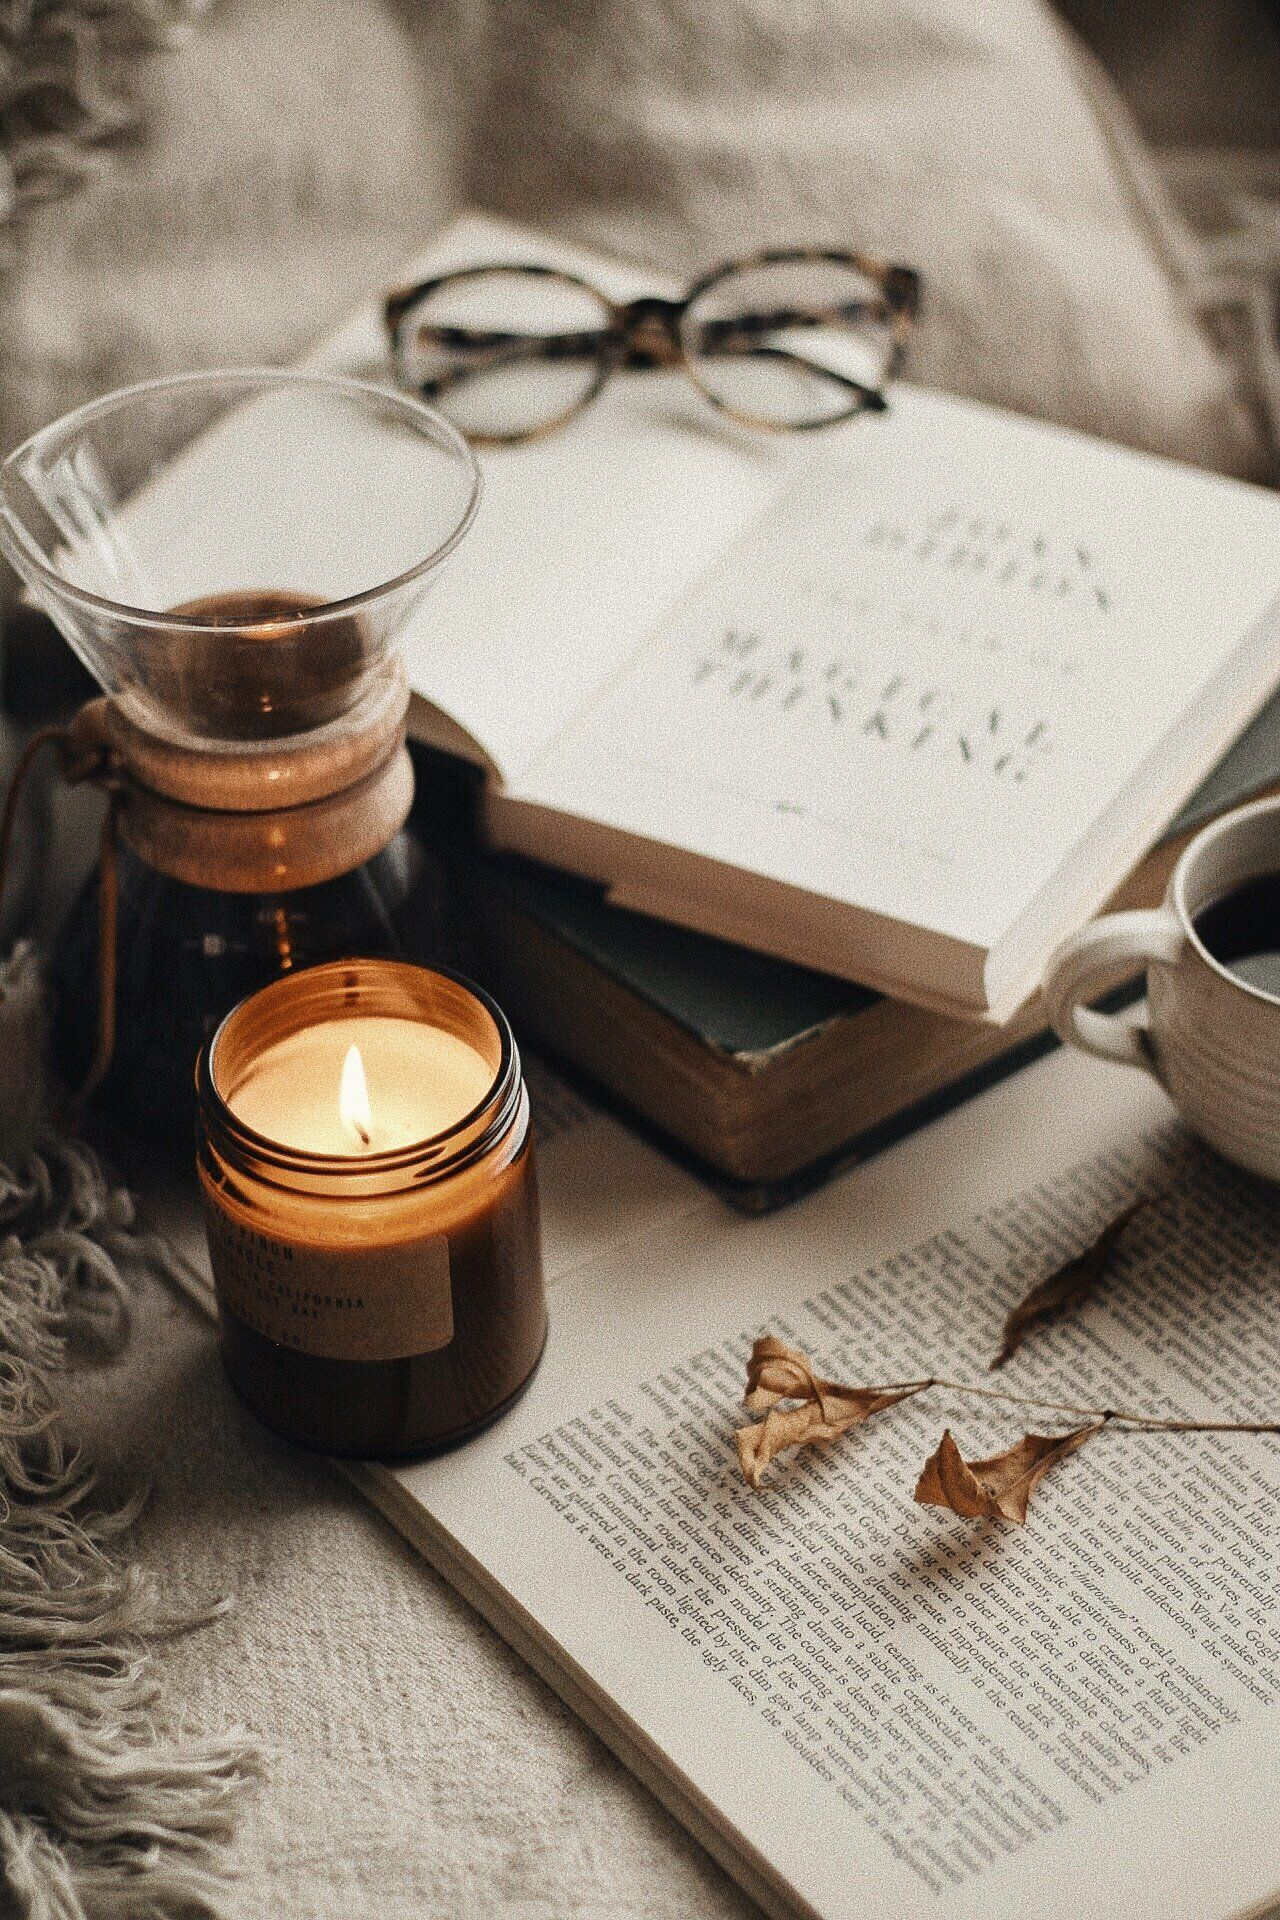 Five Books I Want To Read Before The End Of The Year Polly Florence Candles Aesthetic Cozy Candles Photography Candle Aesthetic Photo Candles